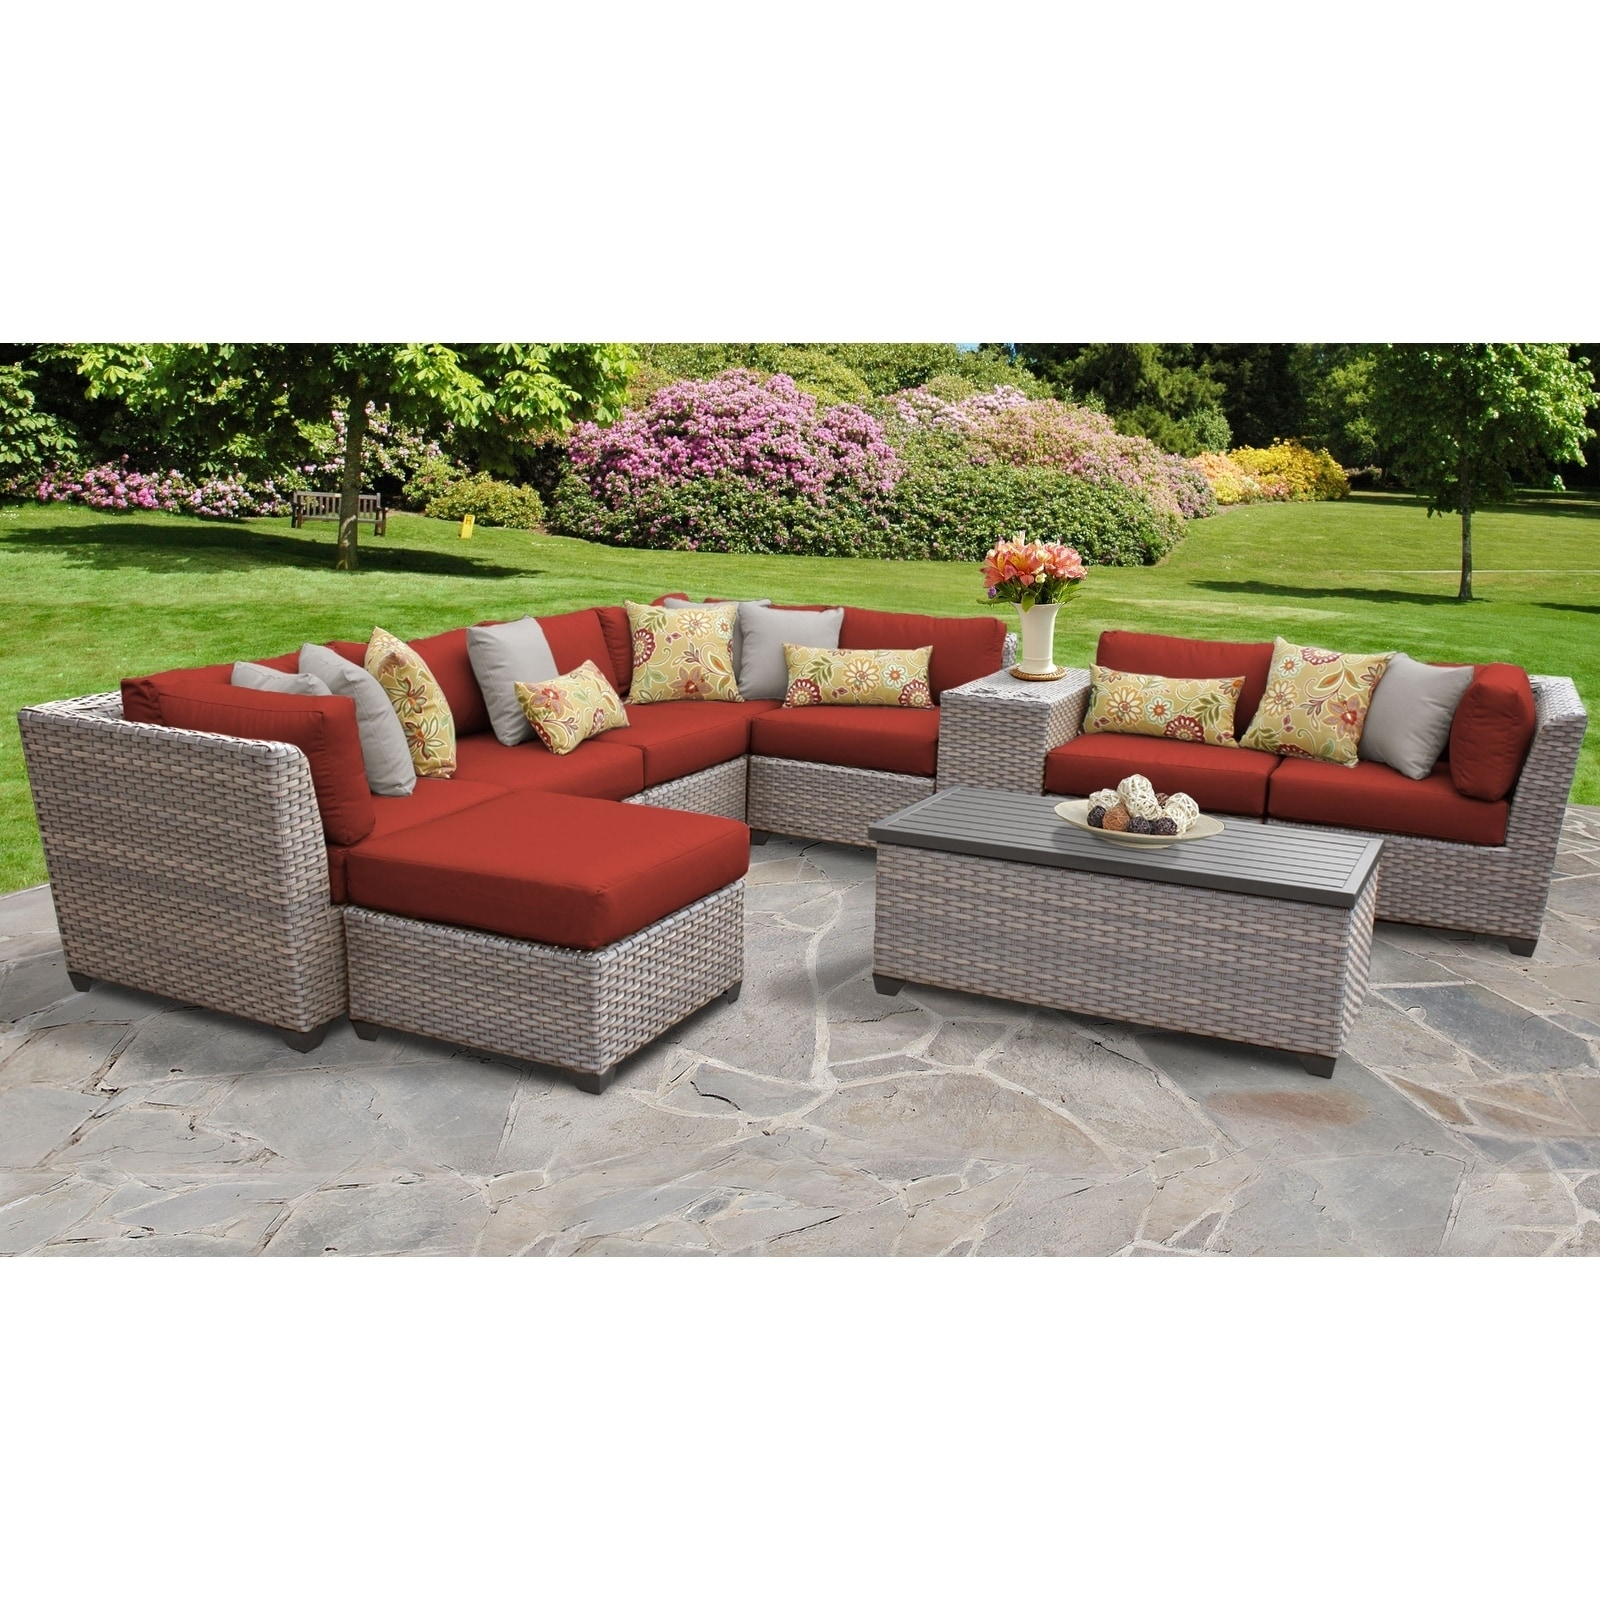 Excellent Florence 10 Piece Outdoor Wicker Patio Furniture Set 10B Lamtechconsult Wood Chair Design Ideas Lamtechconsultcom